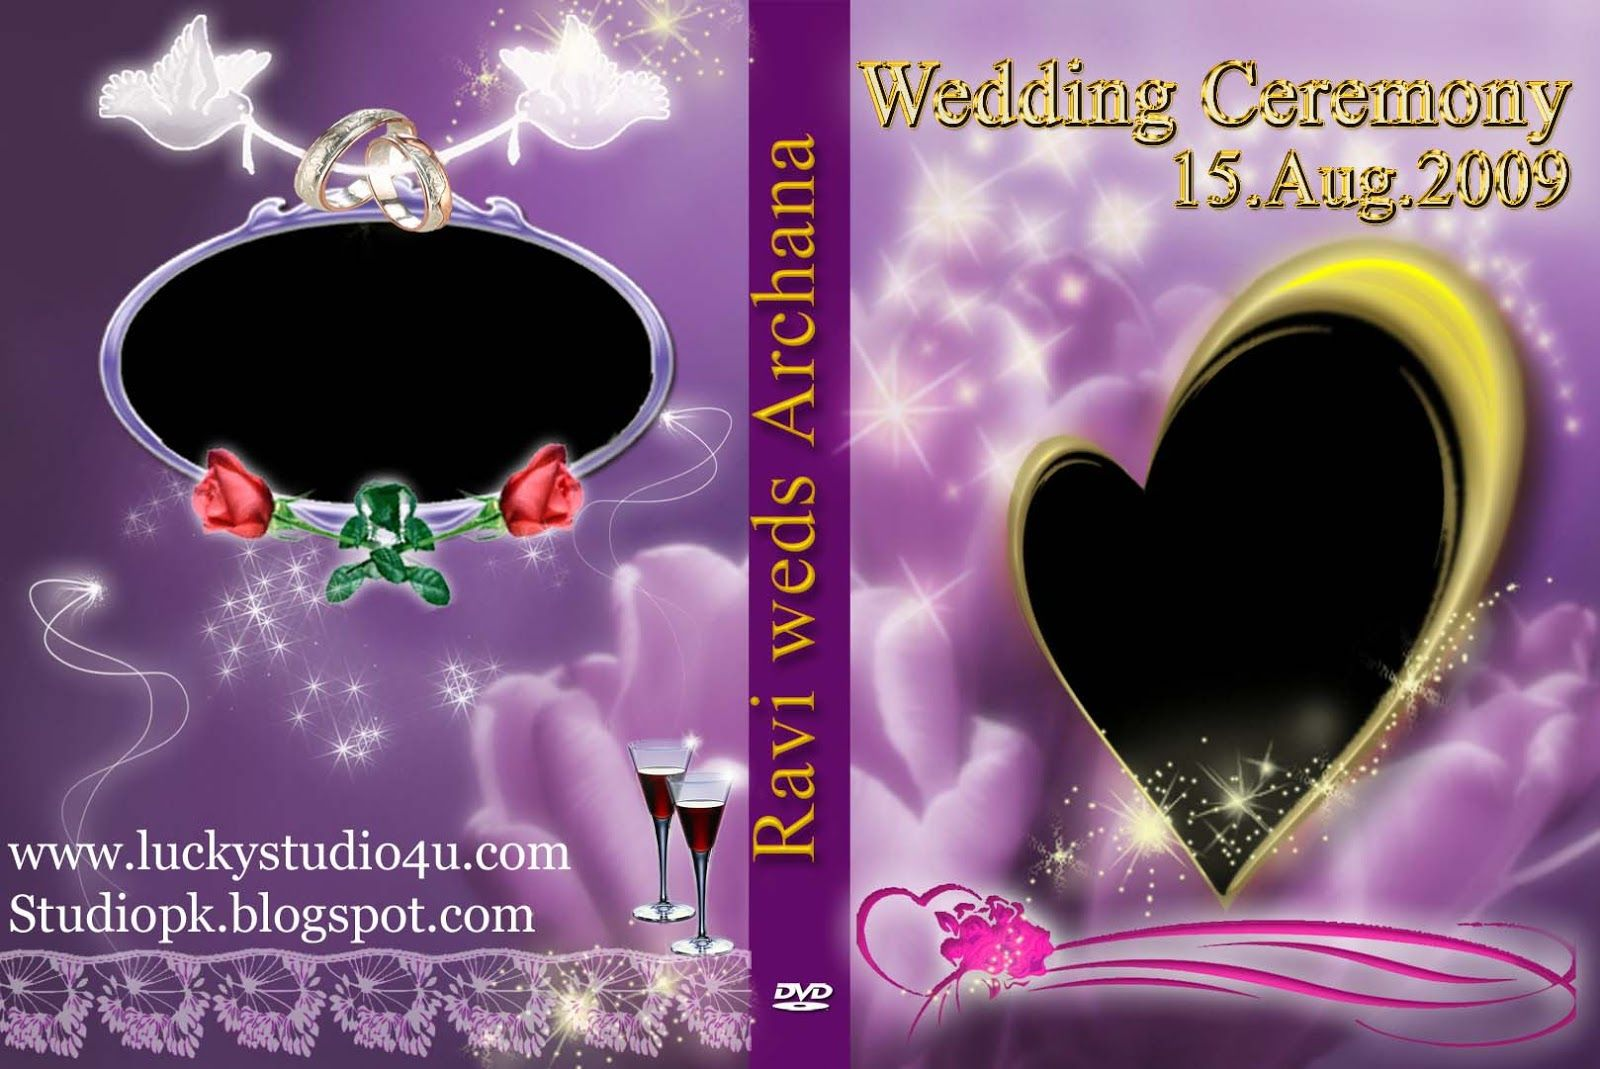 006 Fascinating Wedding Cd Cover Design Template Free Download Picture Full